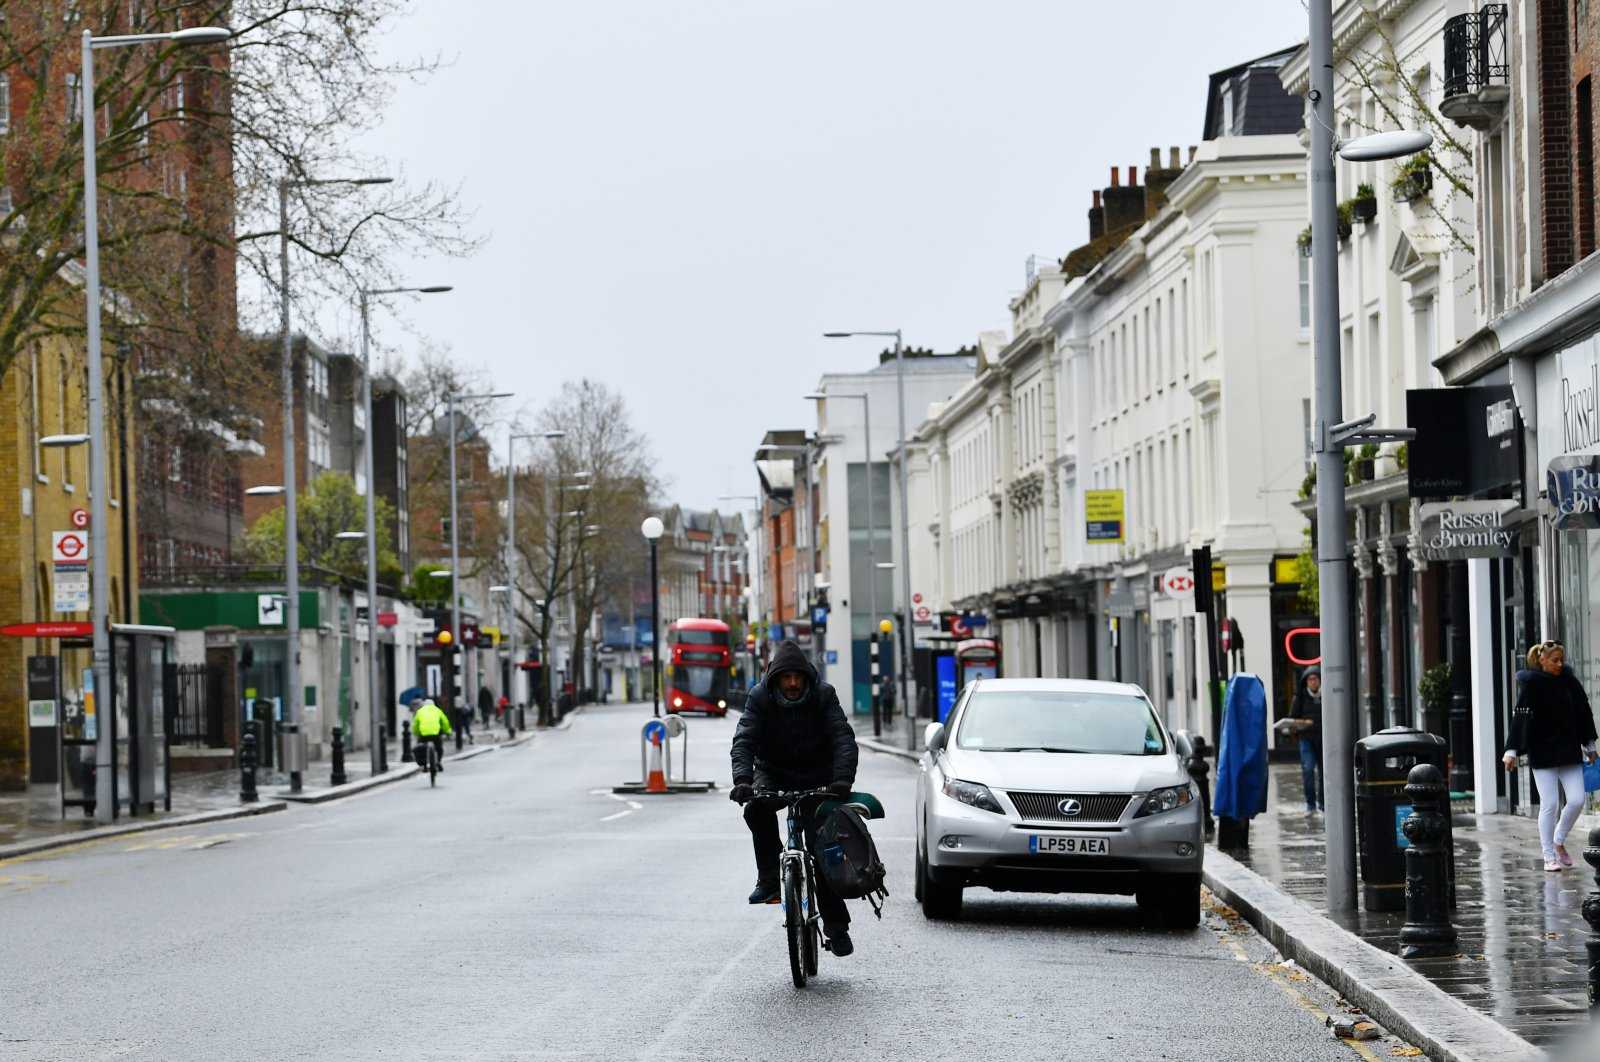 A man rides a bicycle on Kings Road, London, March 29, 2020. (REUTERS Photo)